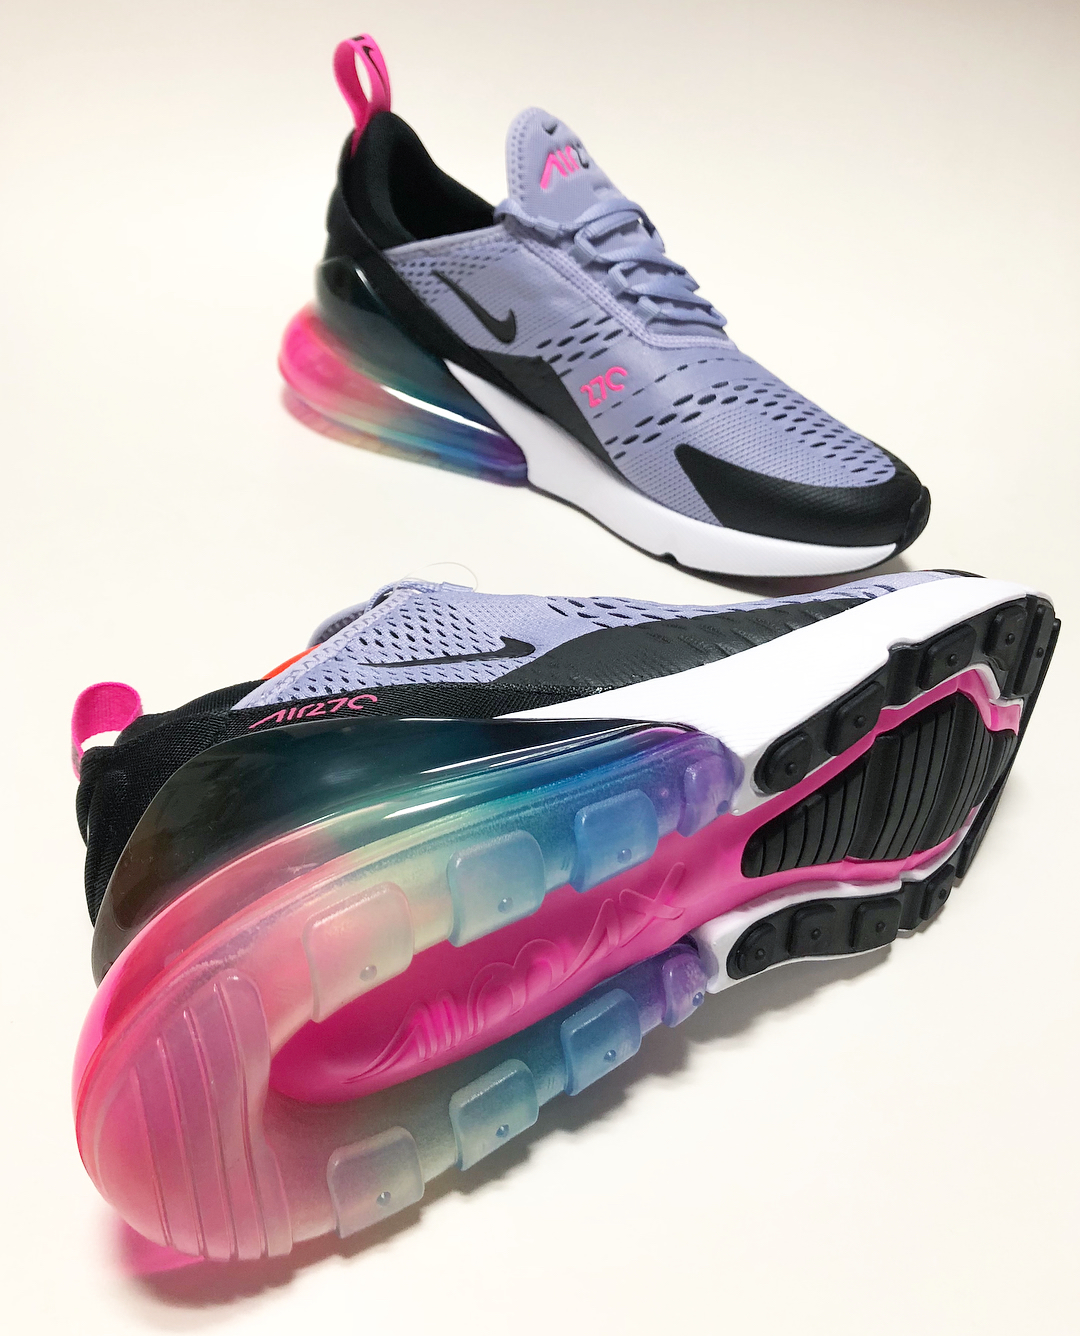 reputable site 6f3b8 3b0b7 Nike Air Max 270 Betrue sold by Zapys